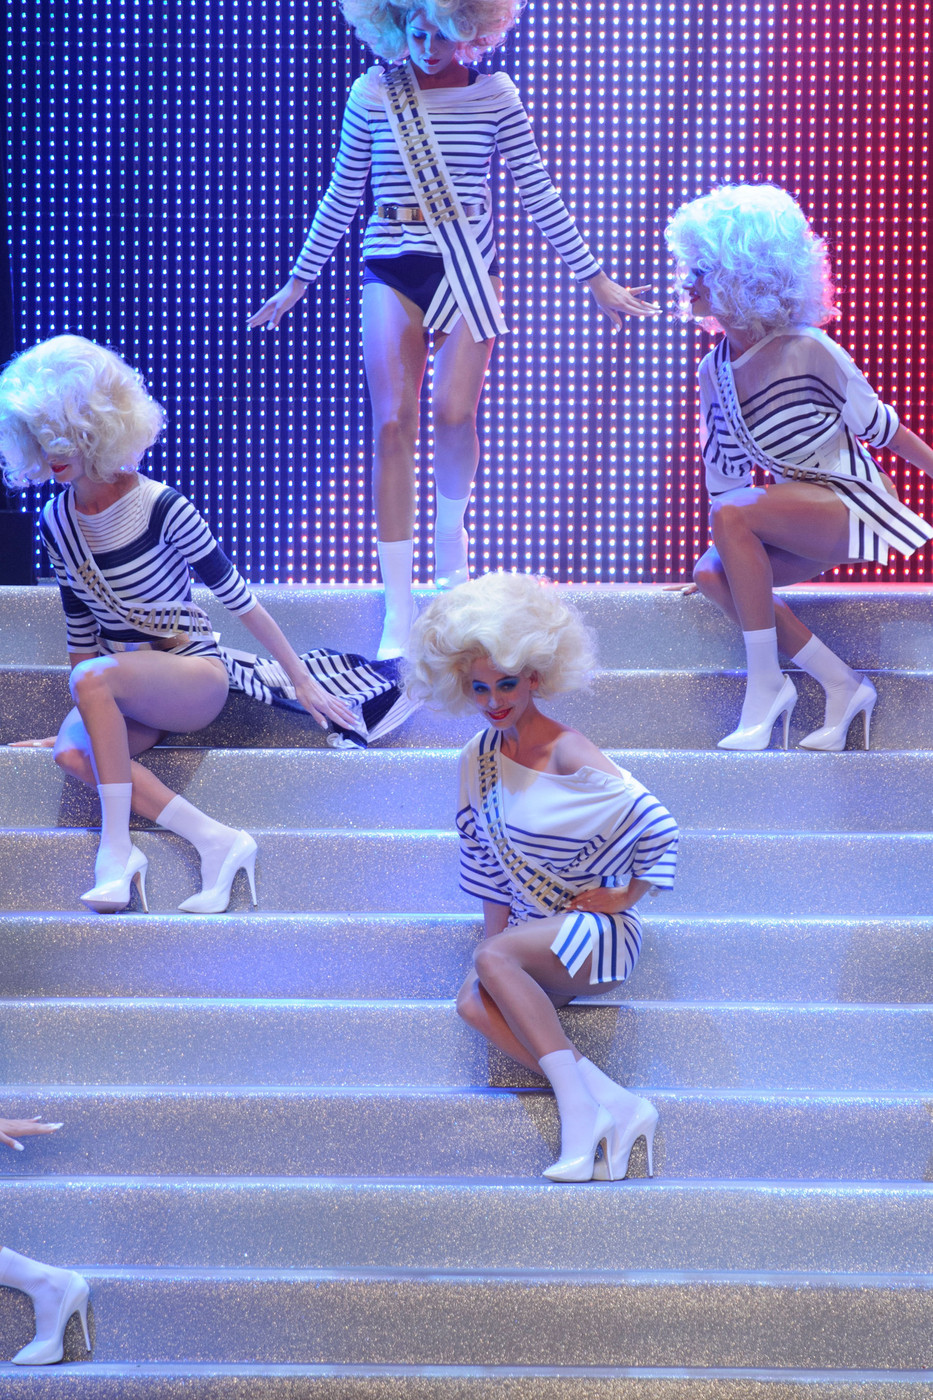 Jean paul gaultier at paris fashion week spring 2015 - Jean paul gaultier puissance 2 ...